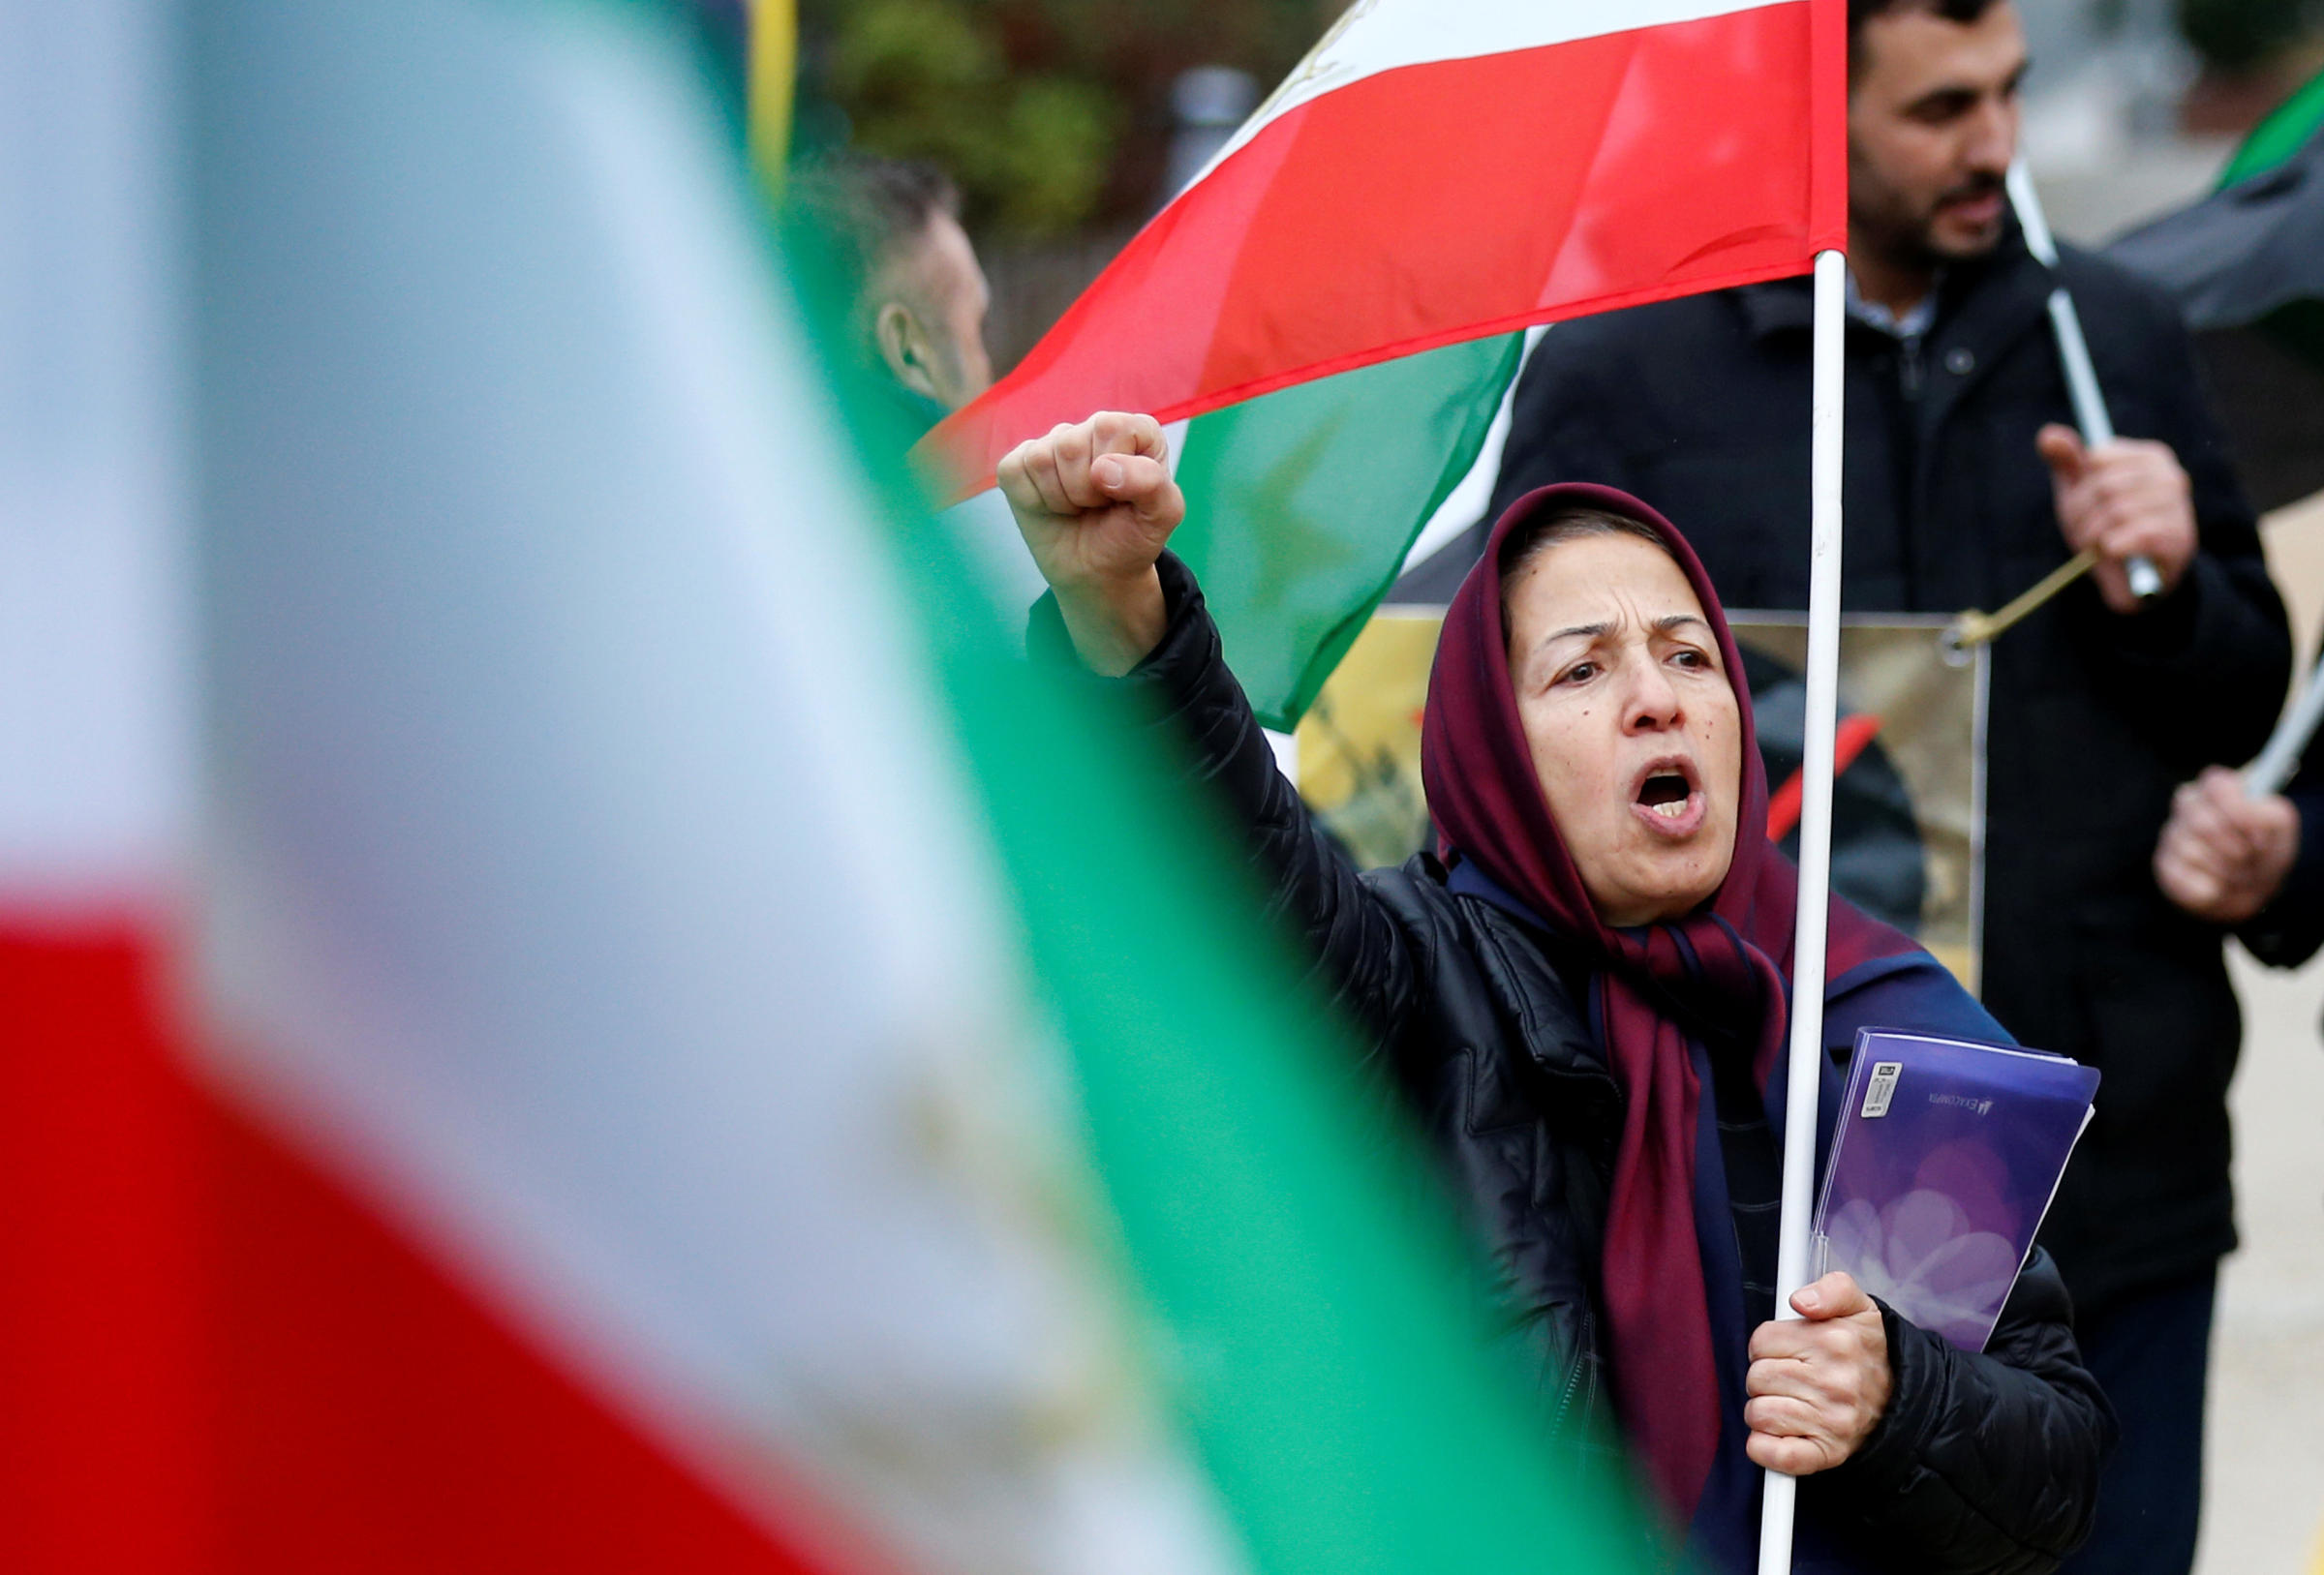 A protester chants slogans against the Iranian government outside the European Union Council in Brussels Belgium on Wednesday